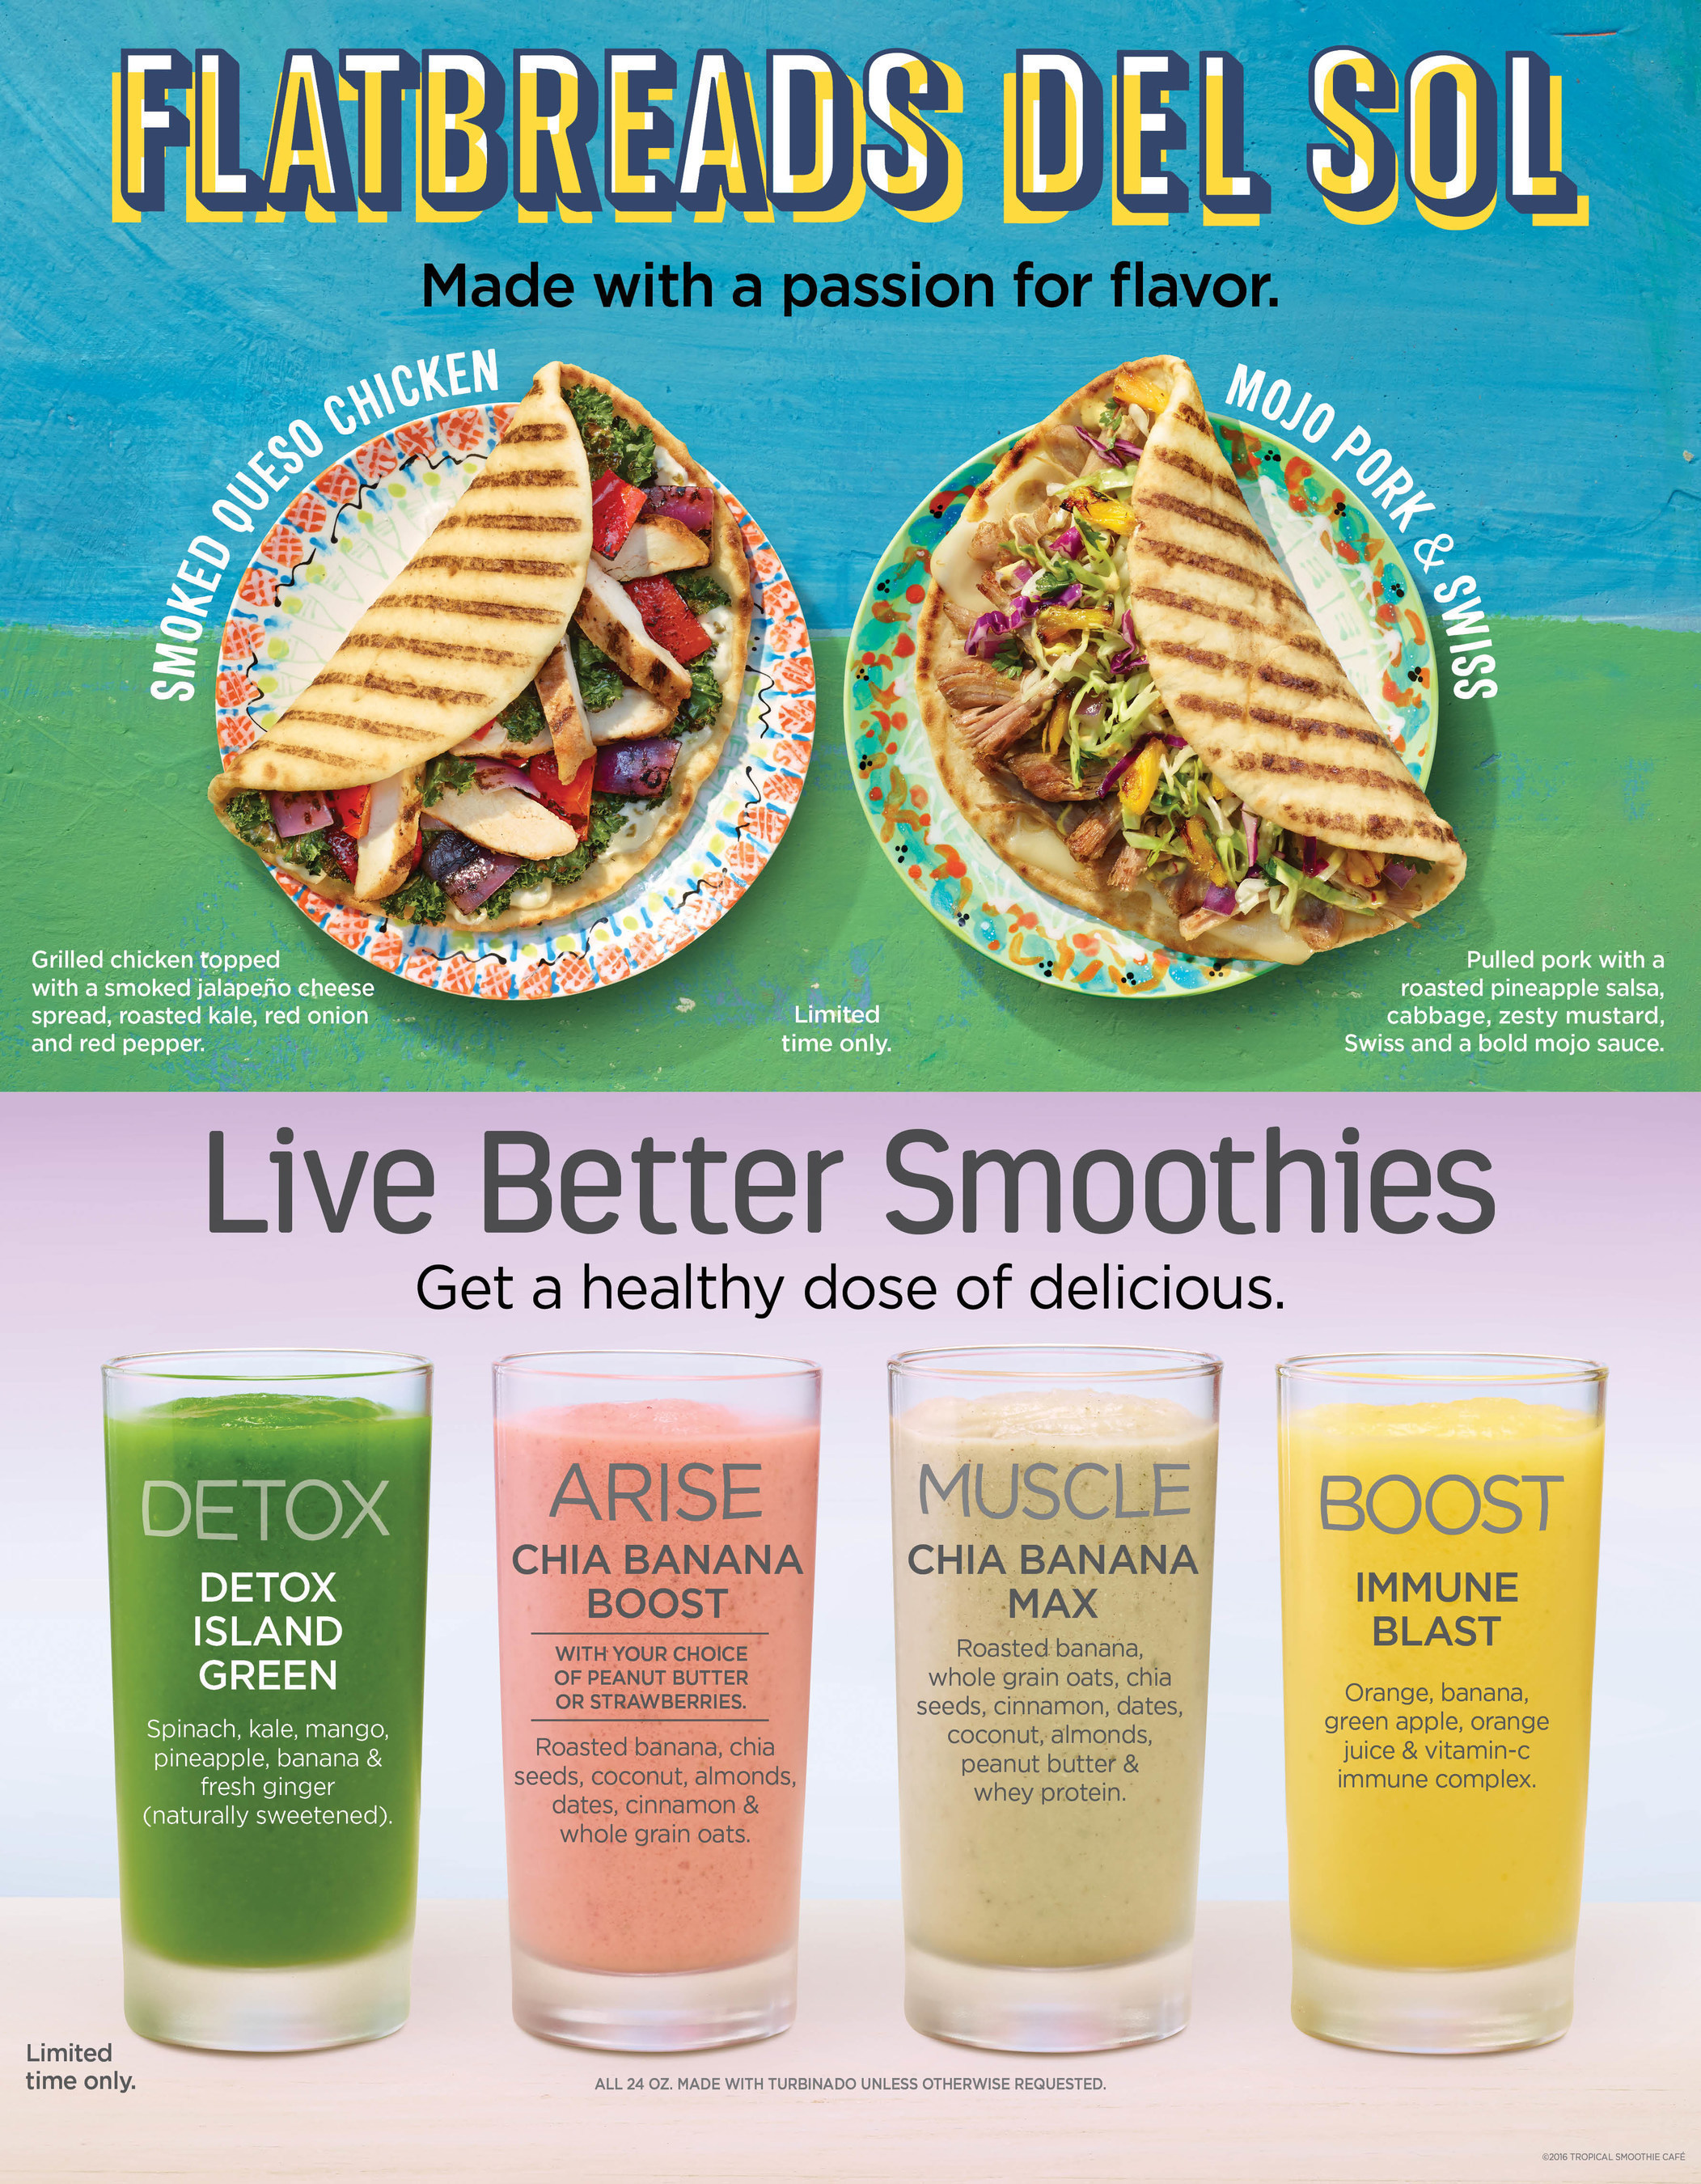 Tropical Smoothie Cafe Offers Guests a Variety of New Options In The New Year